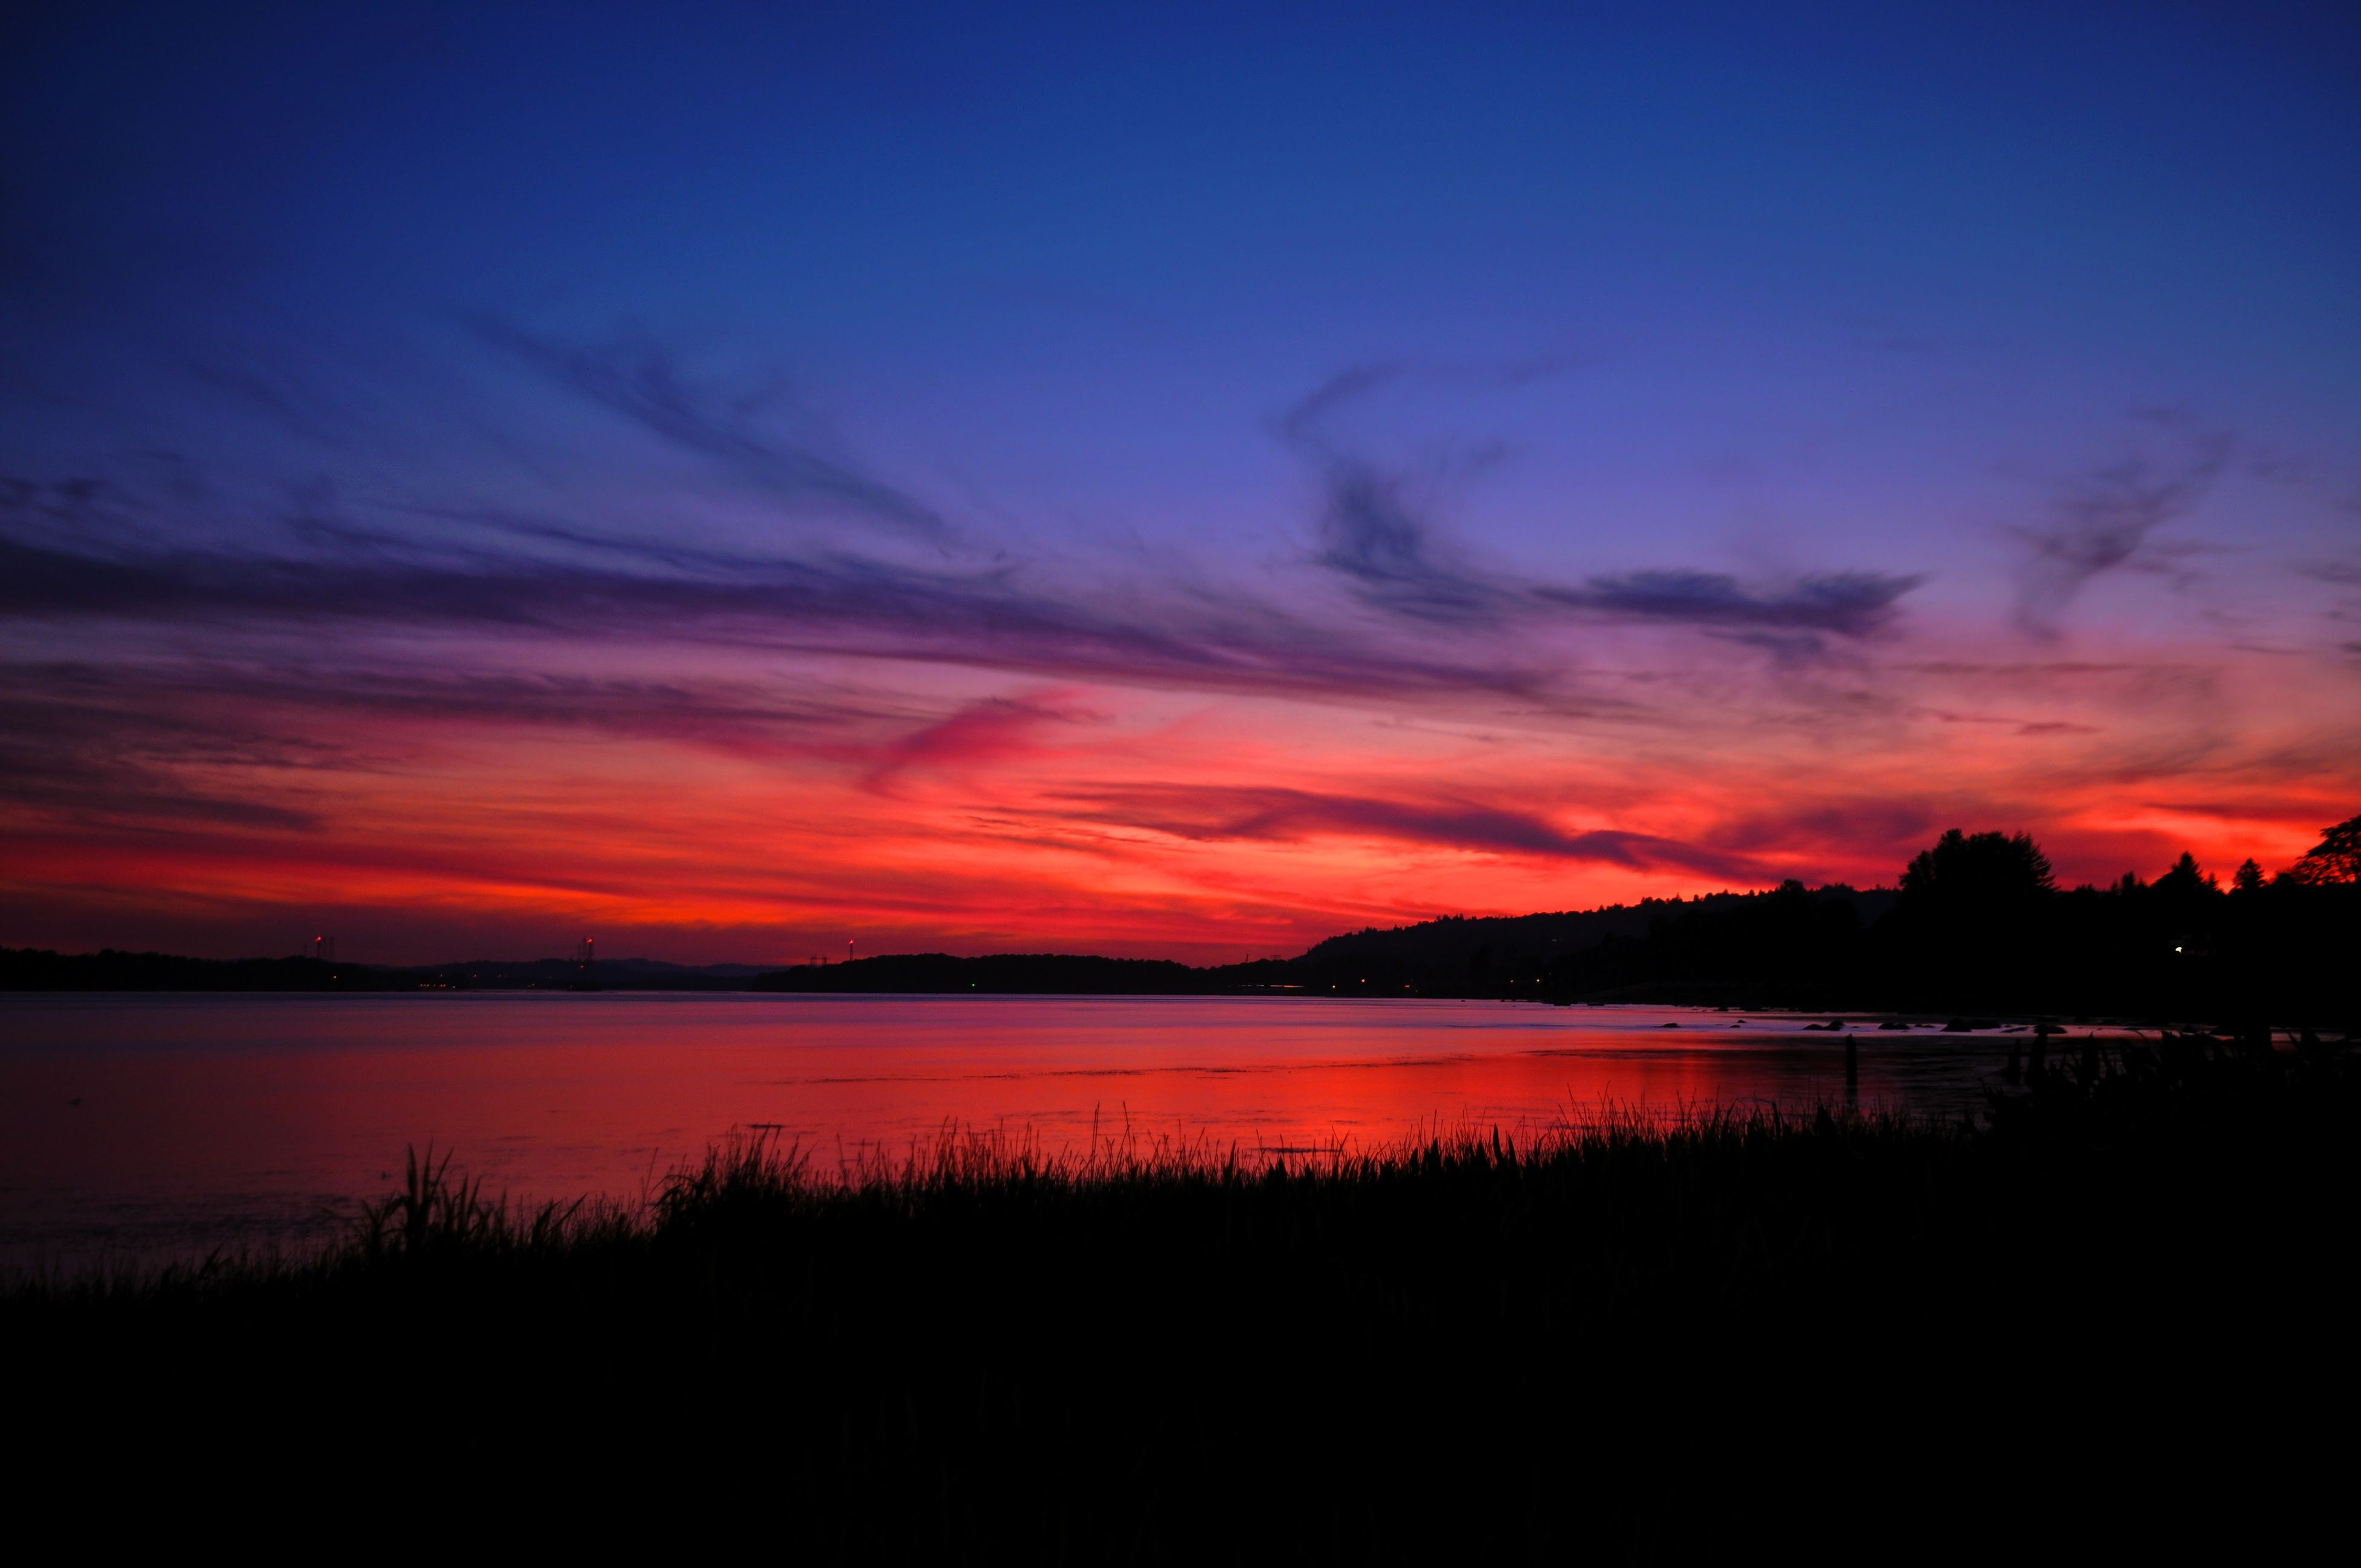 sunset, scenics, tranquil scene, water, silhouette, tranquility, lake, beauty in nature, sky, dusk, non-urban scene, idyllic, dramatic sky, majestic, nature, romantic sky, blue, cloud - sky, tourism, travel destinations, atmospheric mood, orange color, atmosphere, plant, vacations, cloud, dark, vibrant color, moody sky, outdoors, countryside, calm